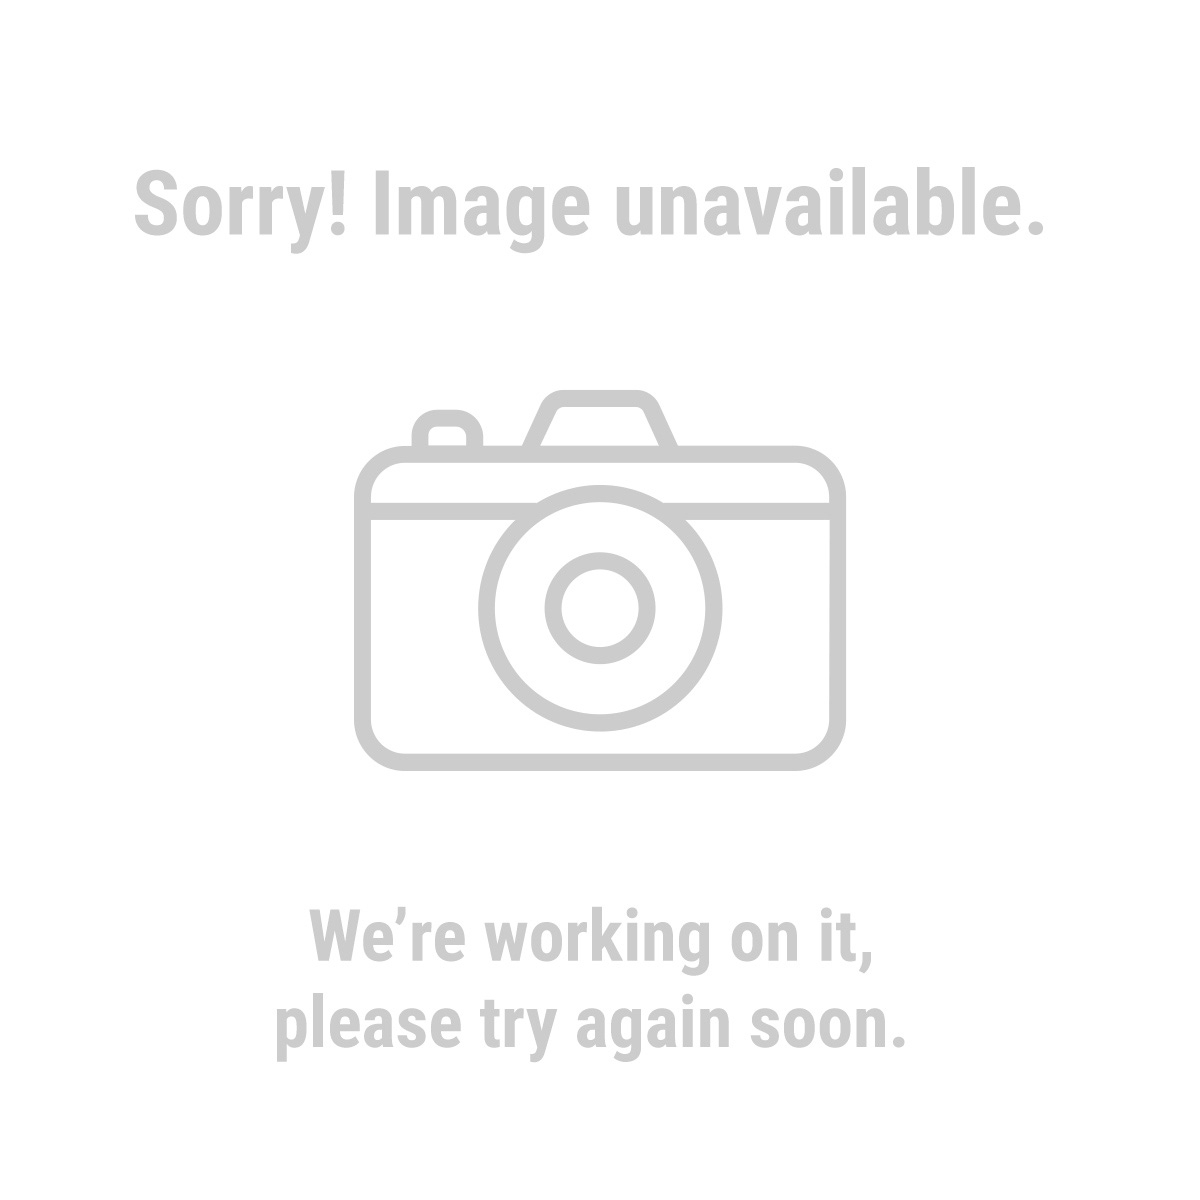 Warrior® 61892 7 in. Continuous Rim Wet Cut Masonry Diamond Blade